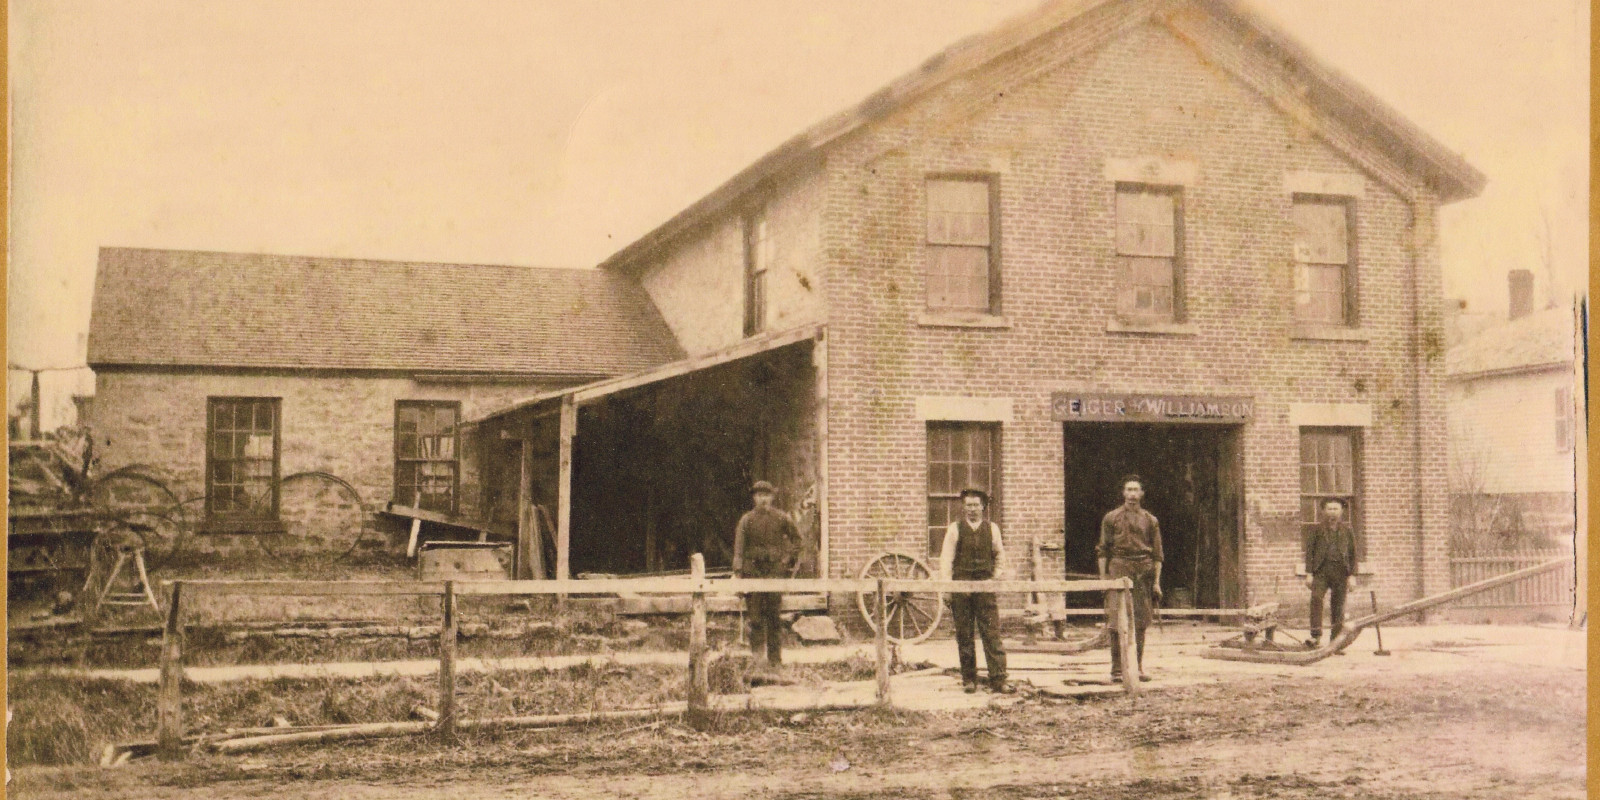 1890 photo of the Geiger and Williamson blacksmith shop, Madison, WI